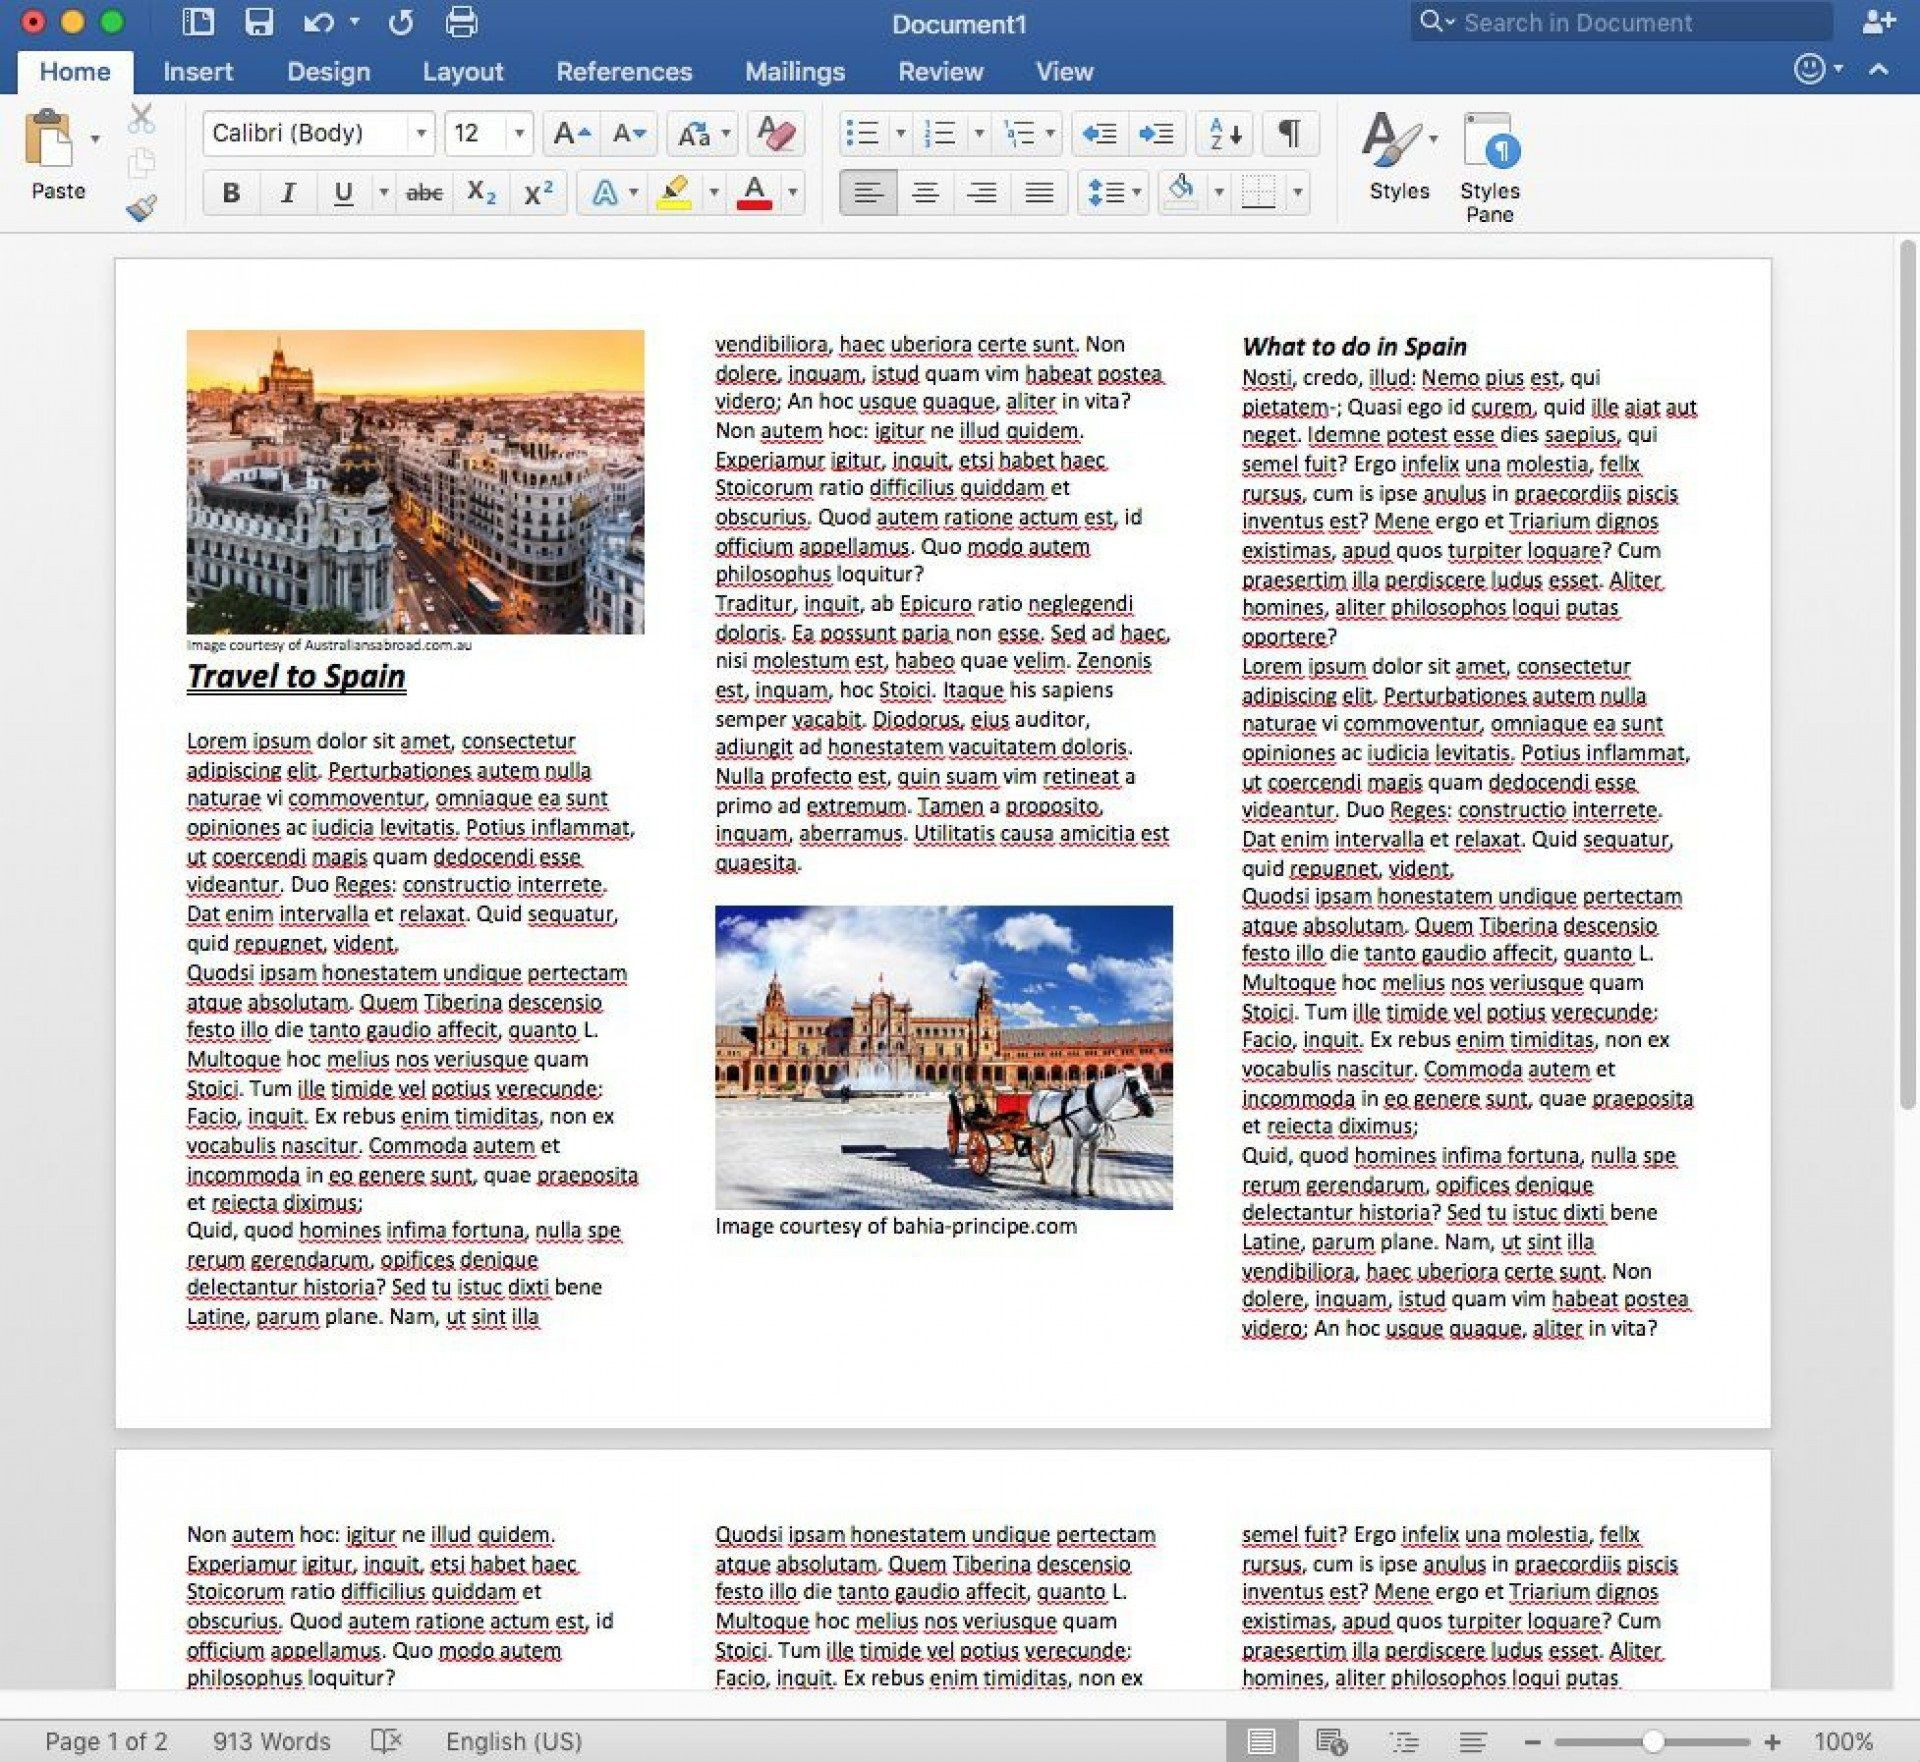 008 Staggering M Word Tri Fold Brochure Template Image  Microsoft Free Download1920